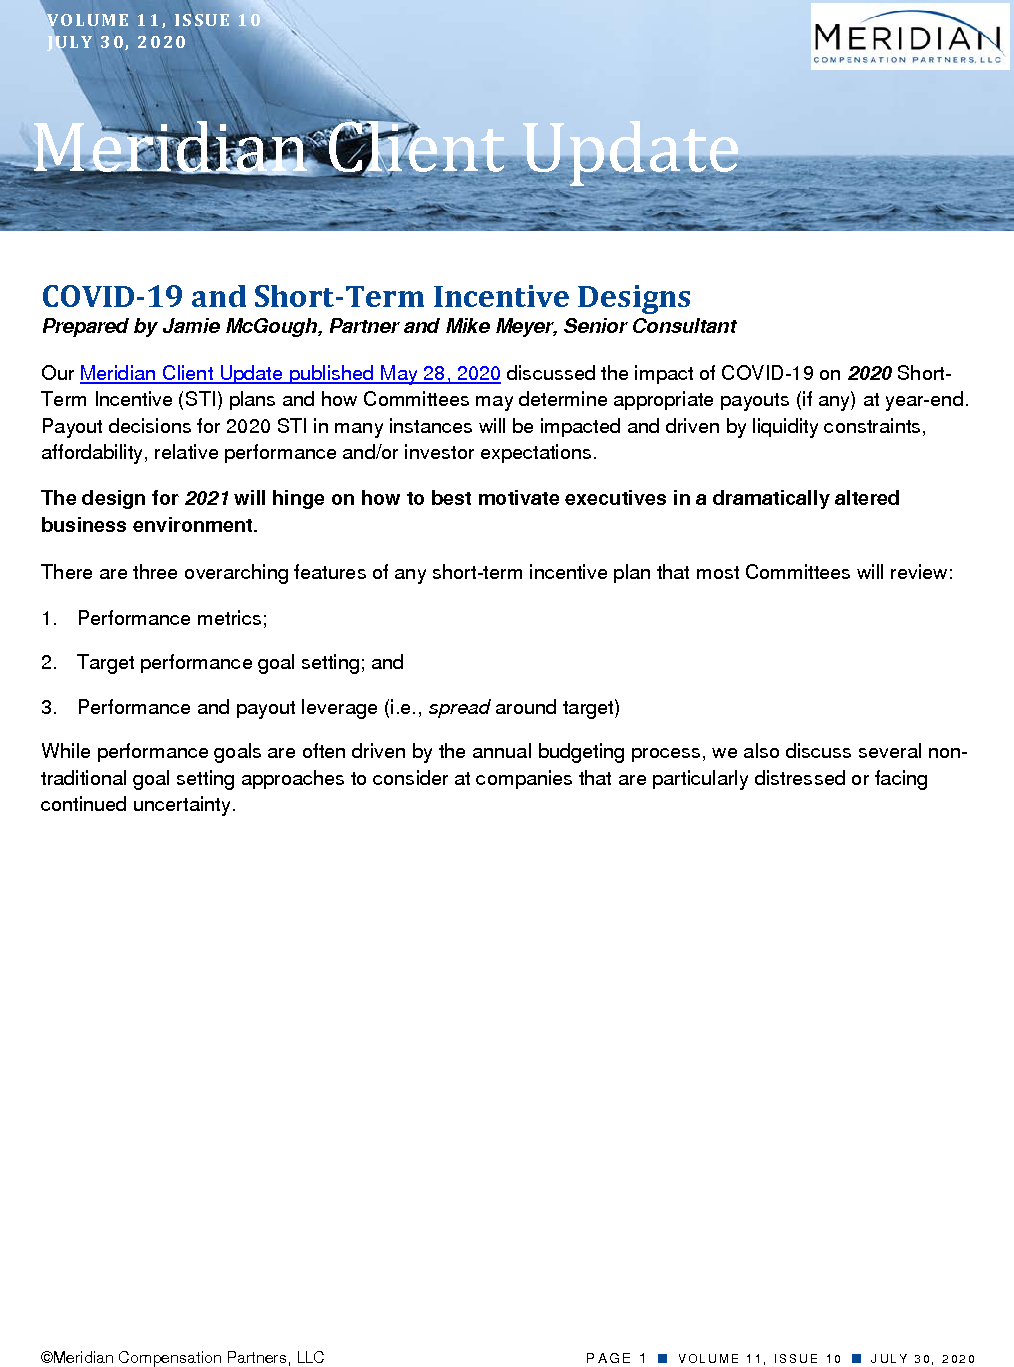 COVID-19 and Short-Term Incentive Designs (PDF)